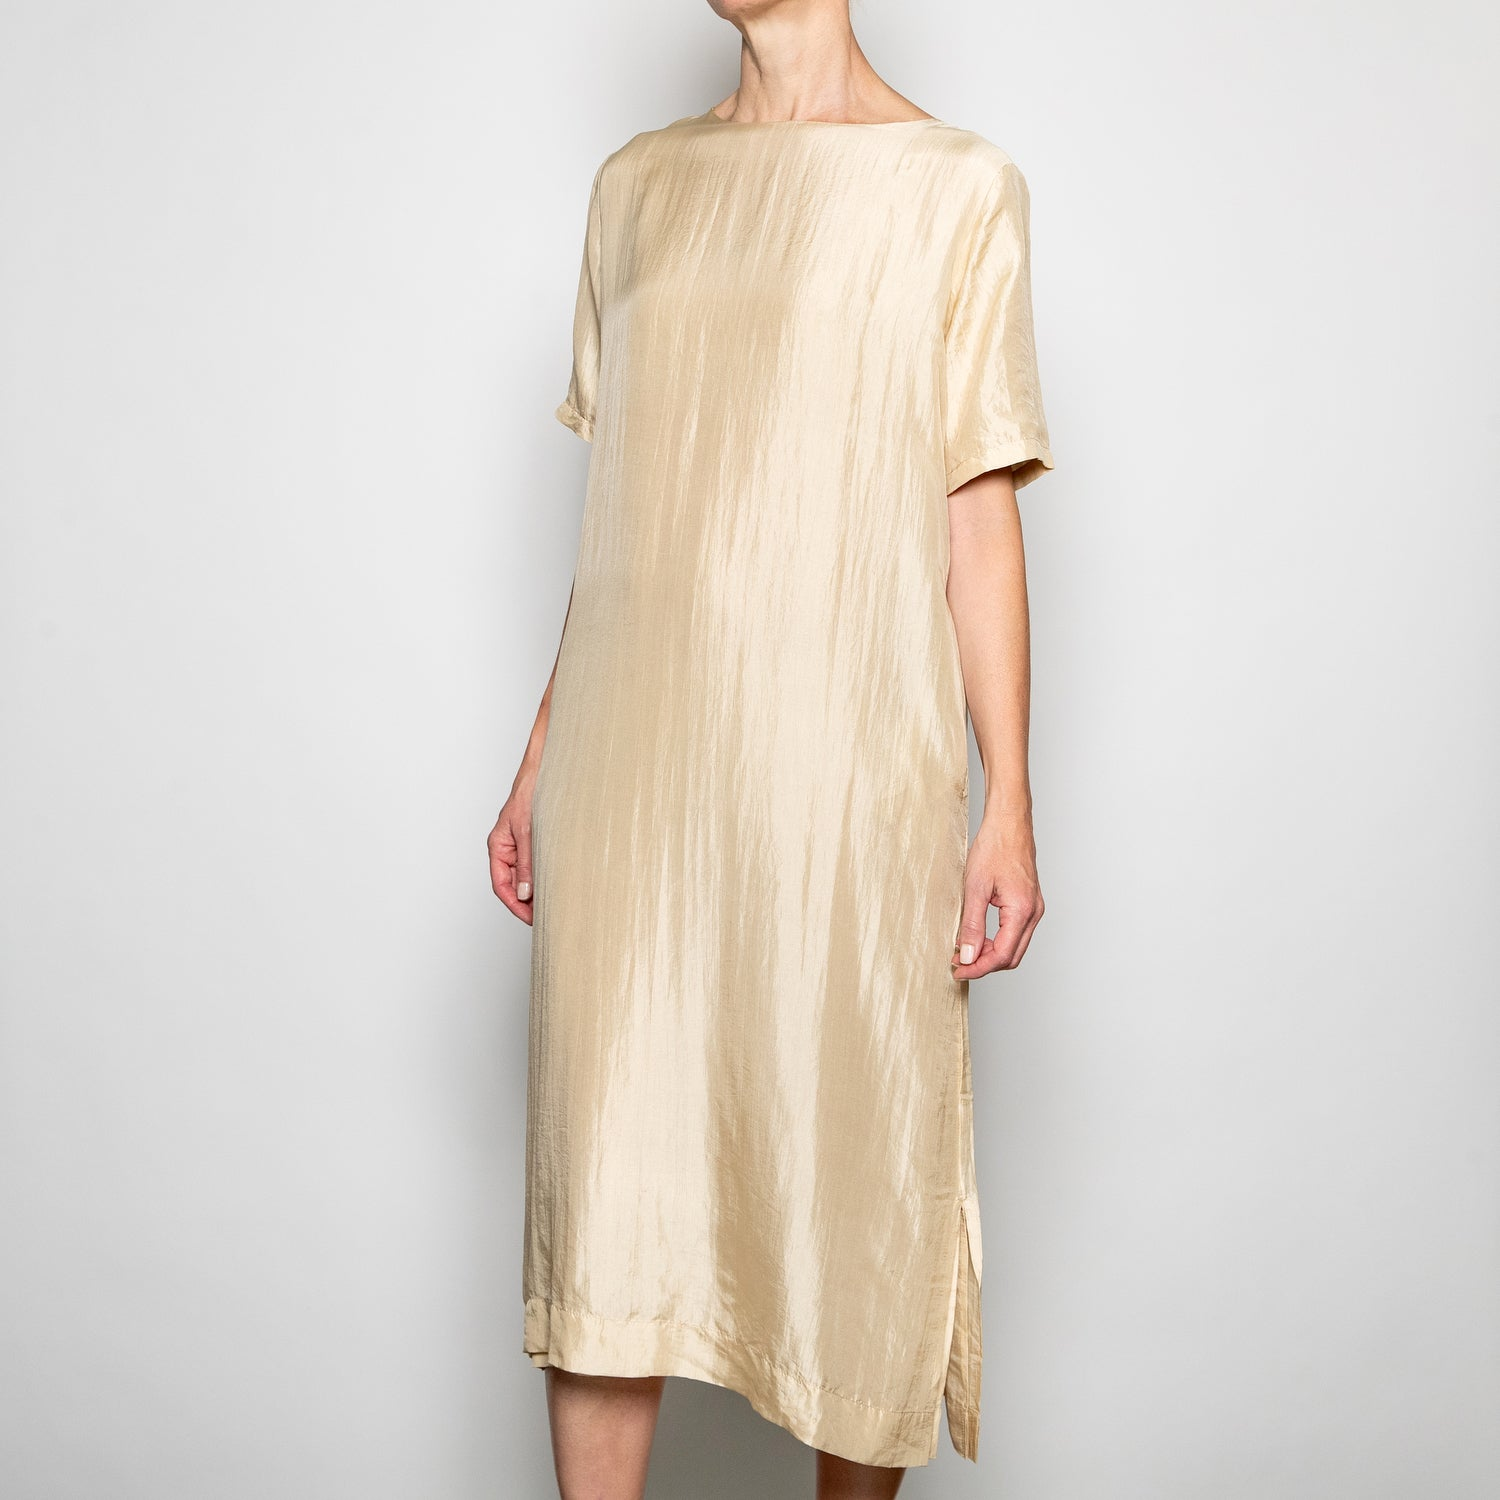 Annam Ti Shirt Dress-TI - S013-Cream-M/L